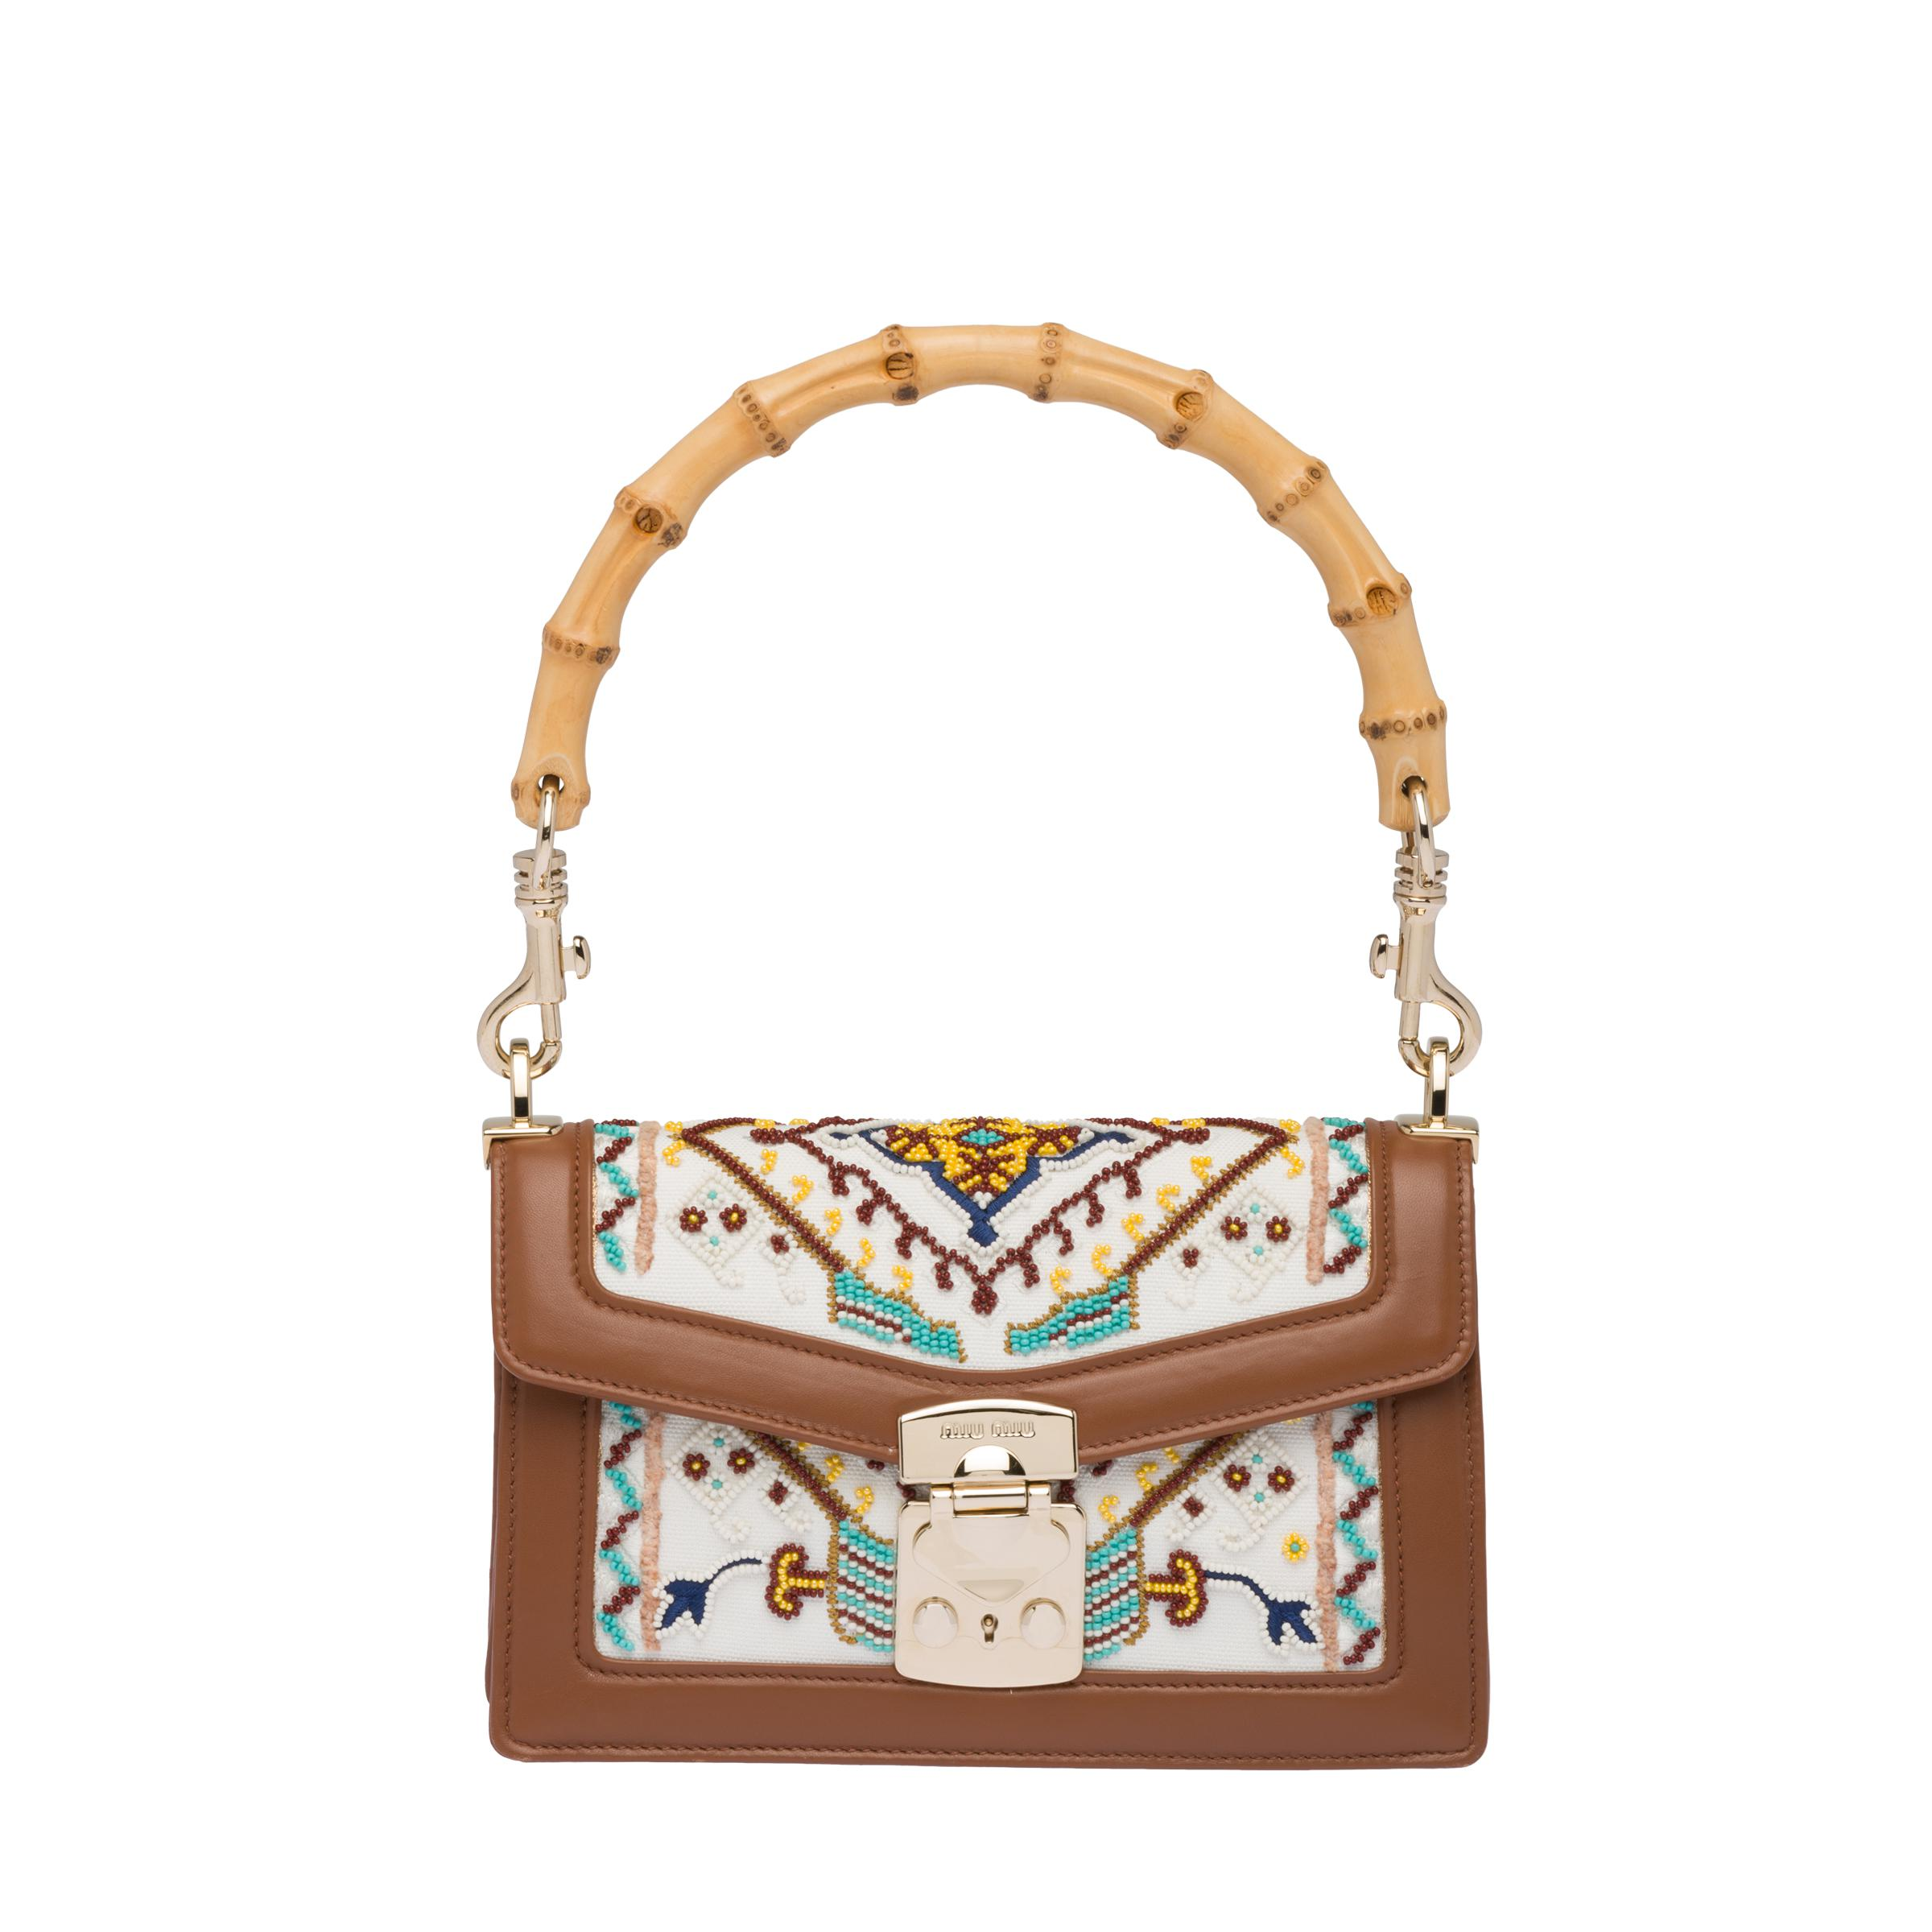 Miu Confidential Embroidered Fabric And Leather Bag Women White/cognac